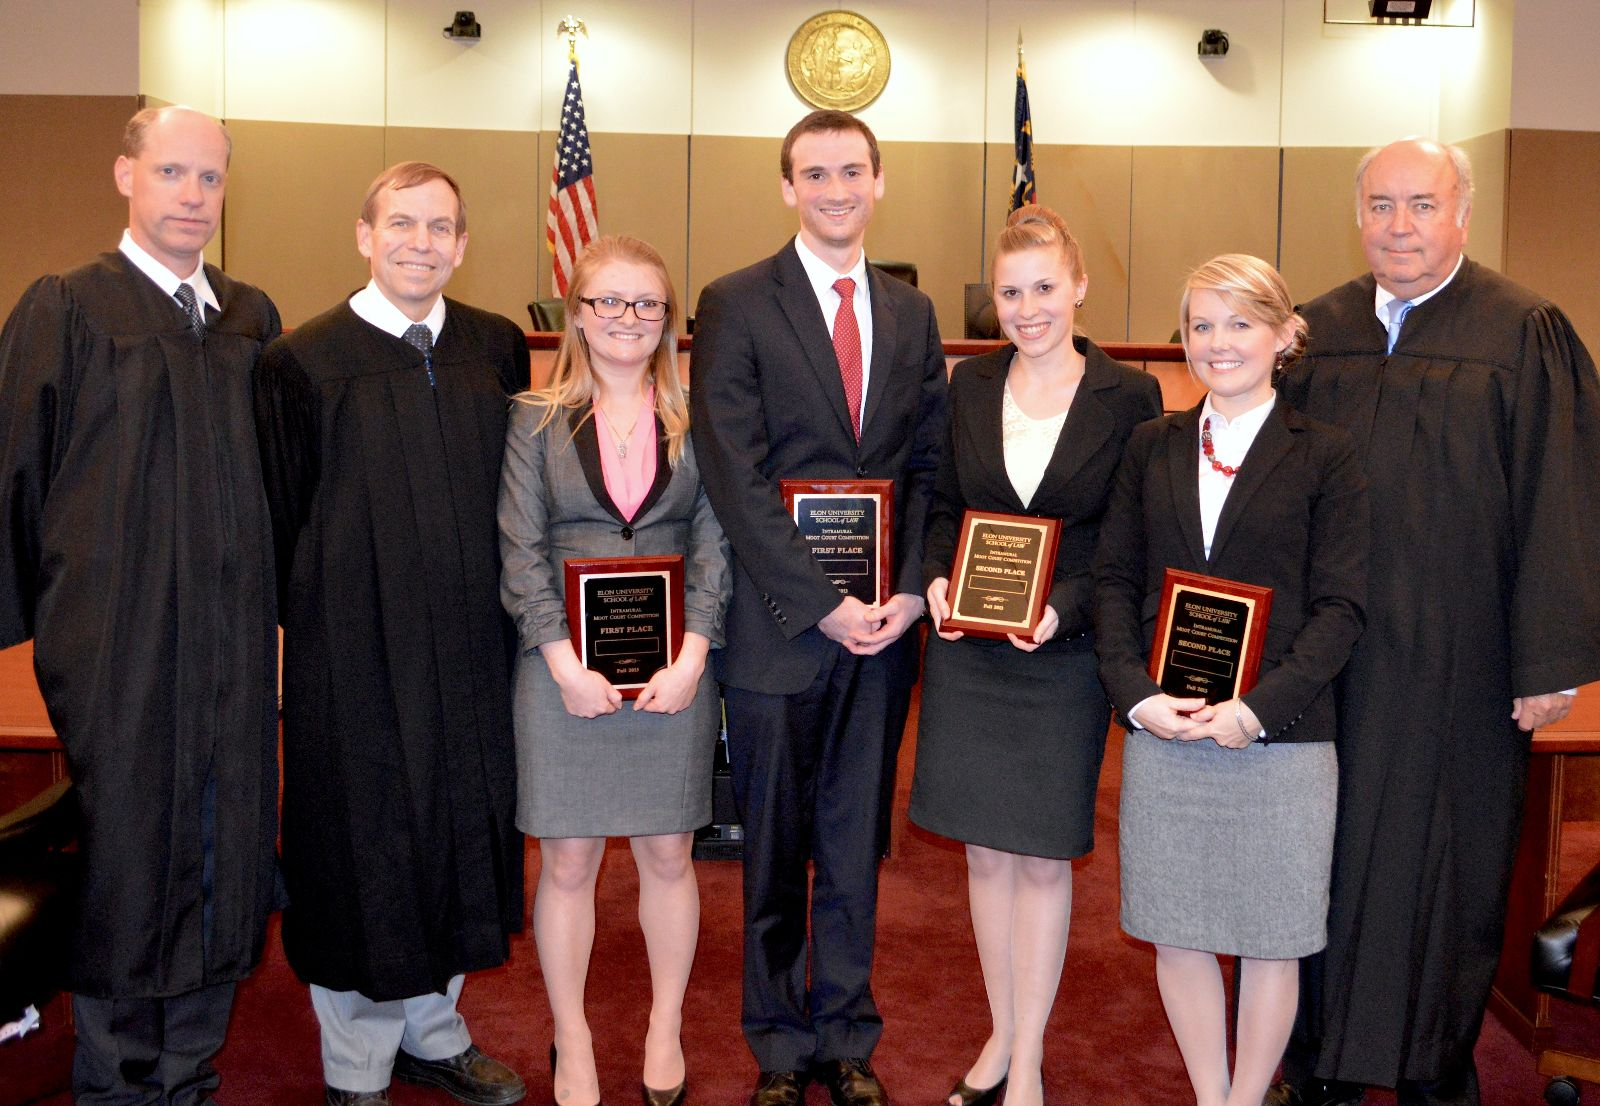 Winning teams of the 2013 Elon Law Intramural Moot Court Competition with final round judges